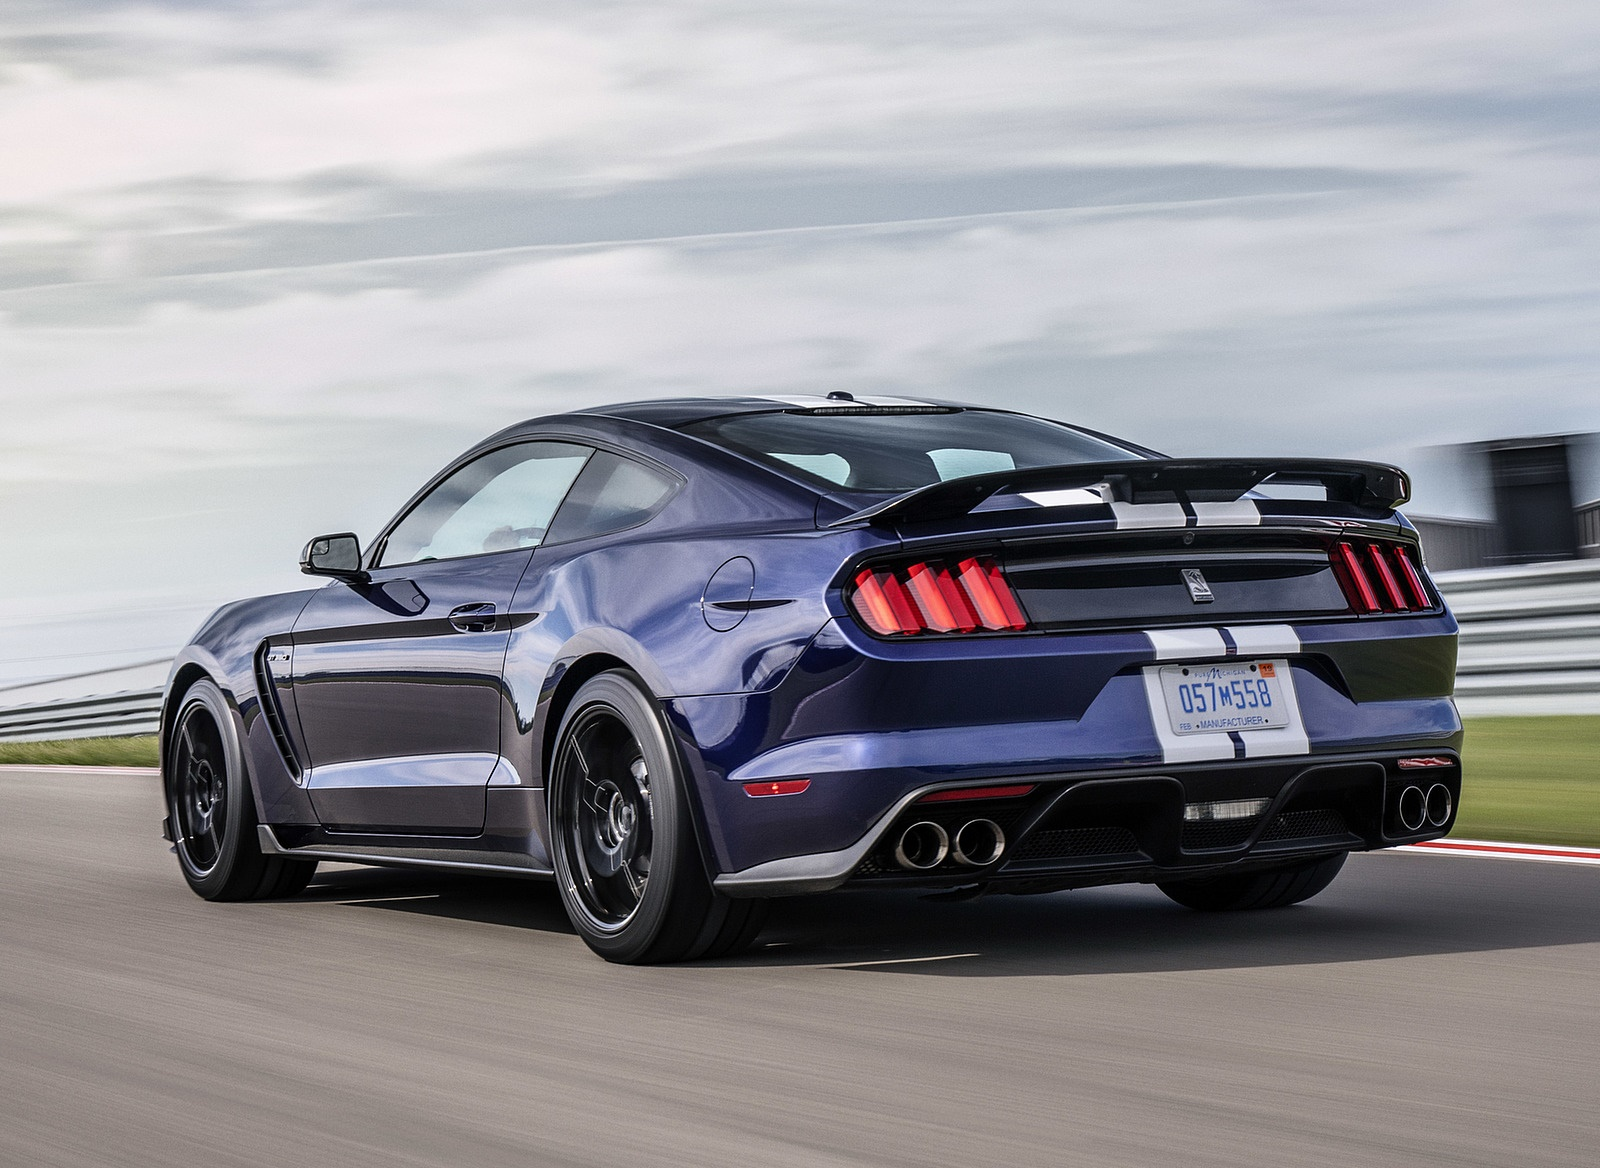 2019 Ford Mustang Shelby GT350 Rear Three-Quarter Wallpapers (7)